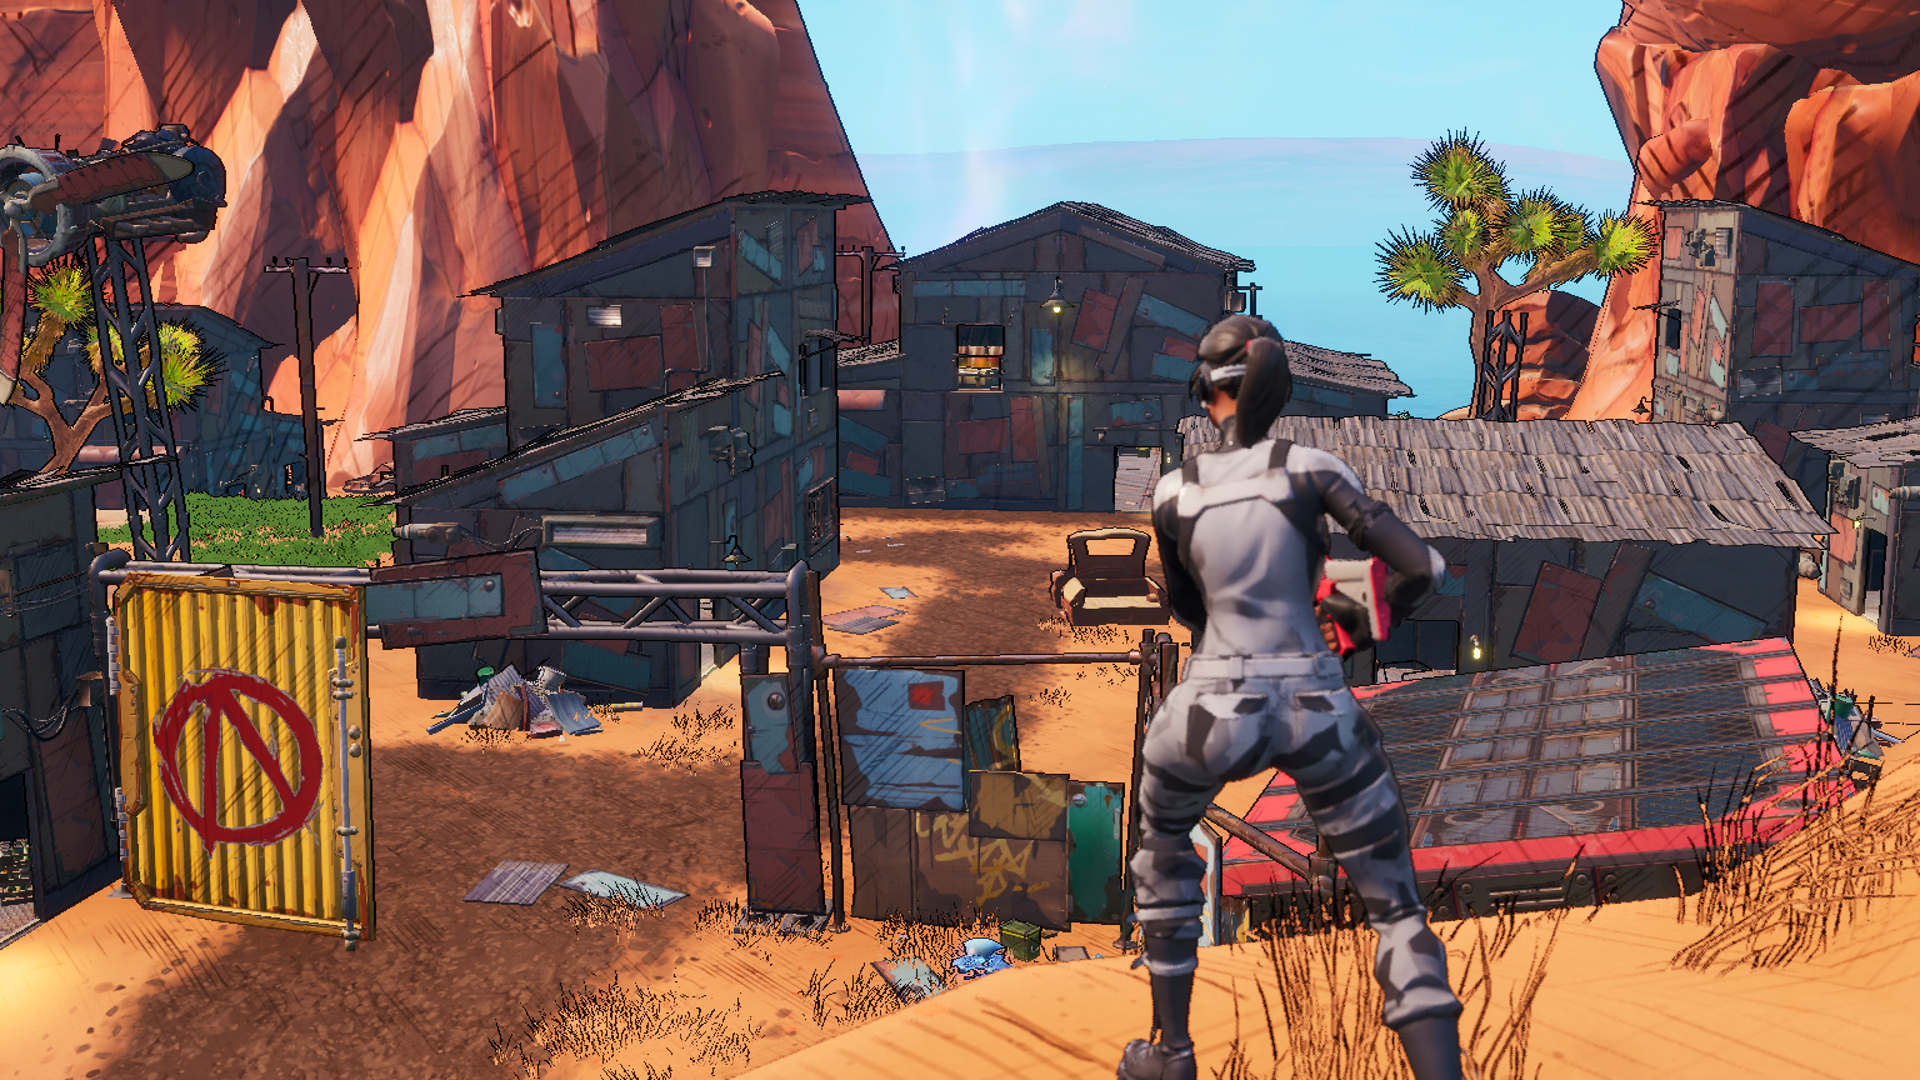 Fortnite's latest patch adds a Borderlands-themed area and the new Shield Bubble item